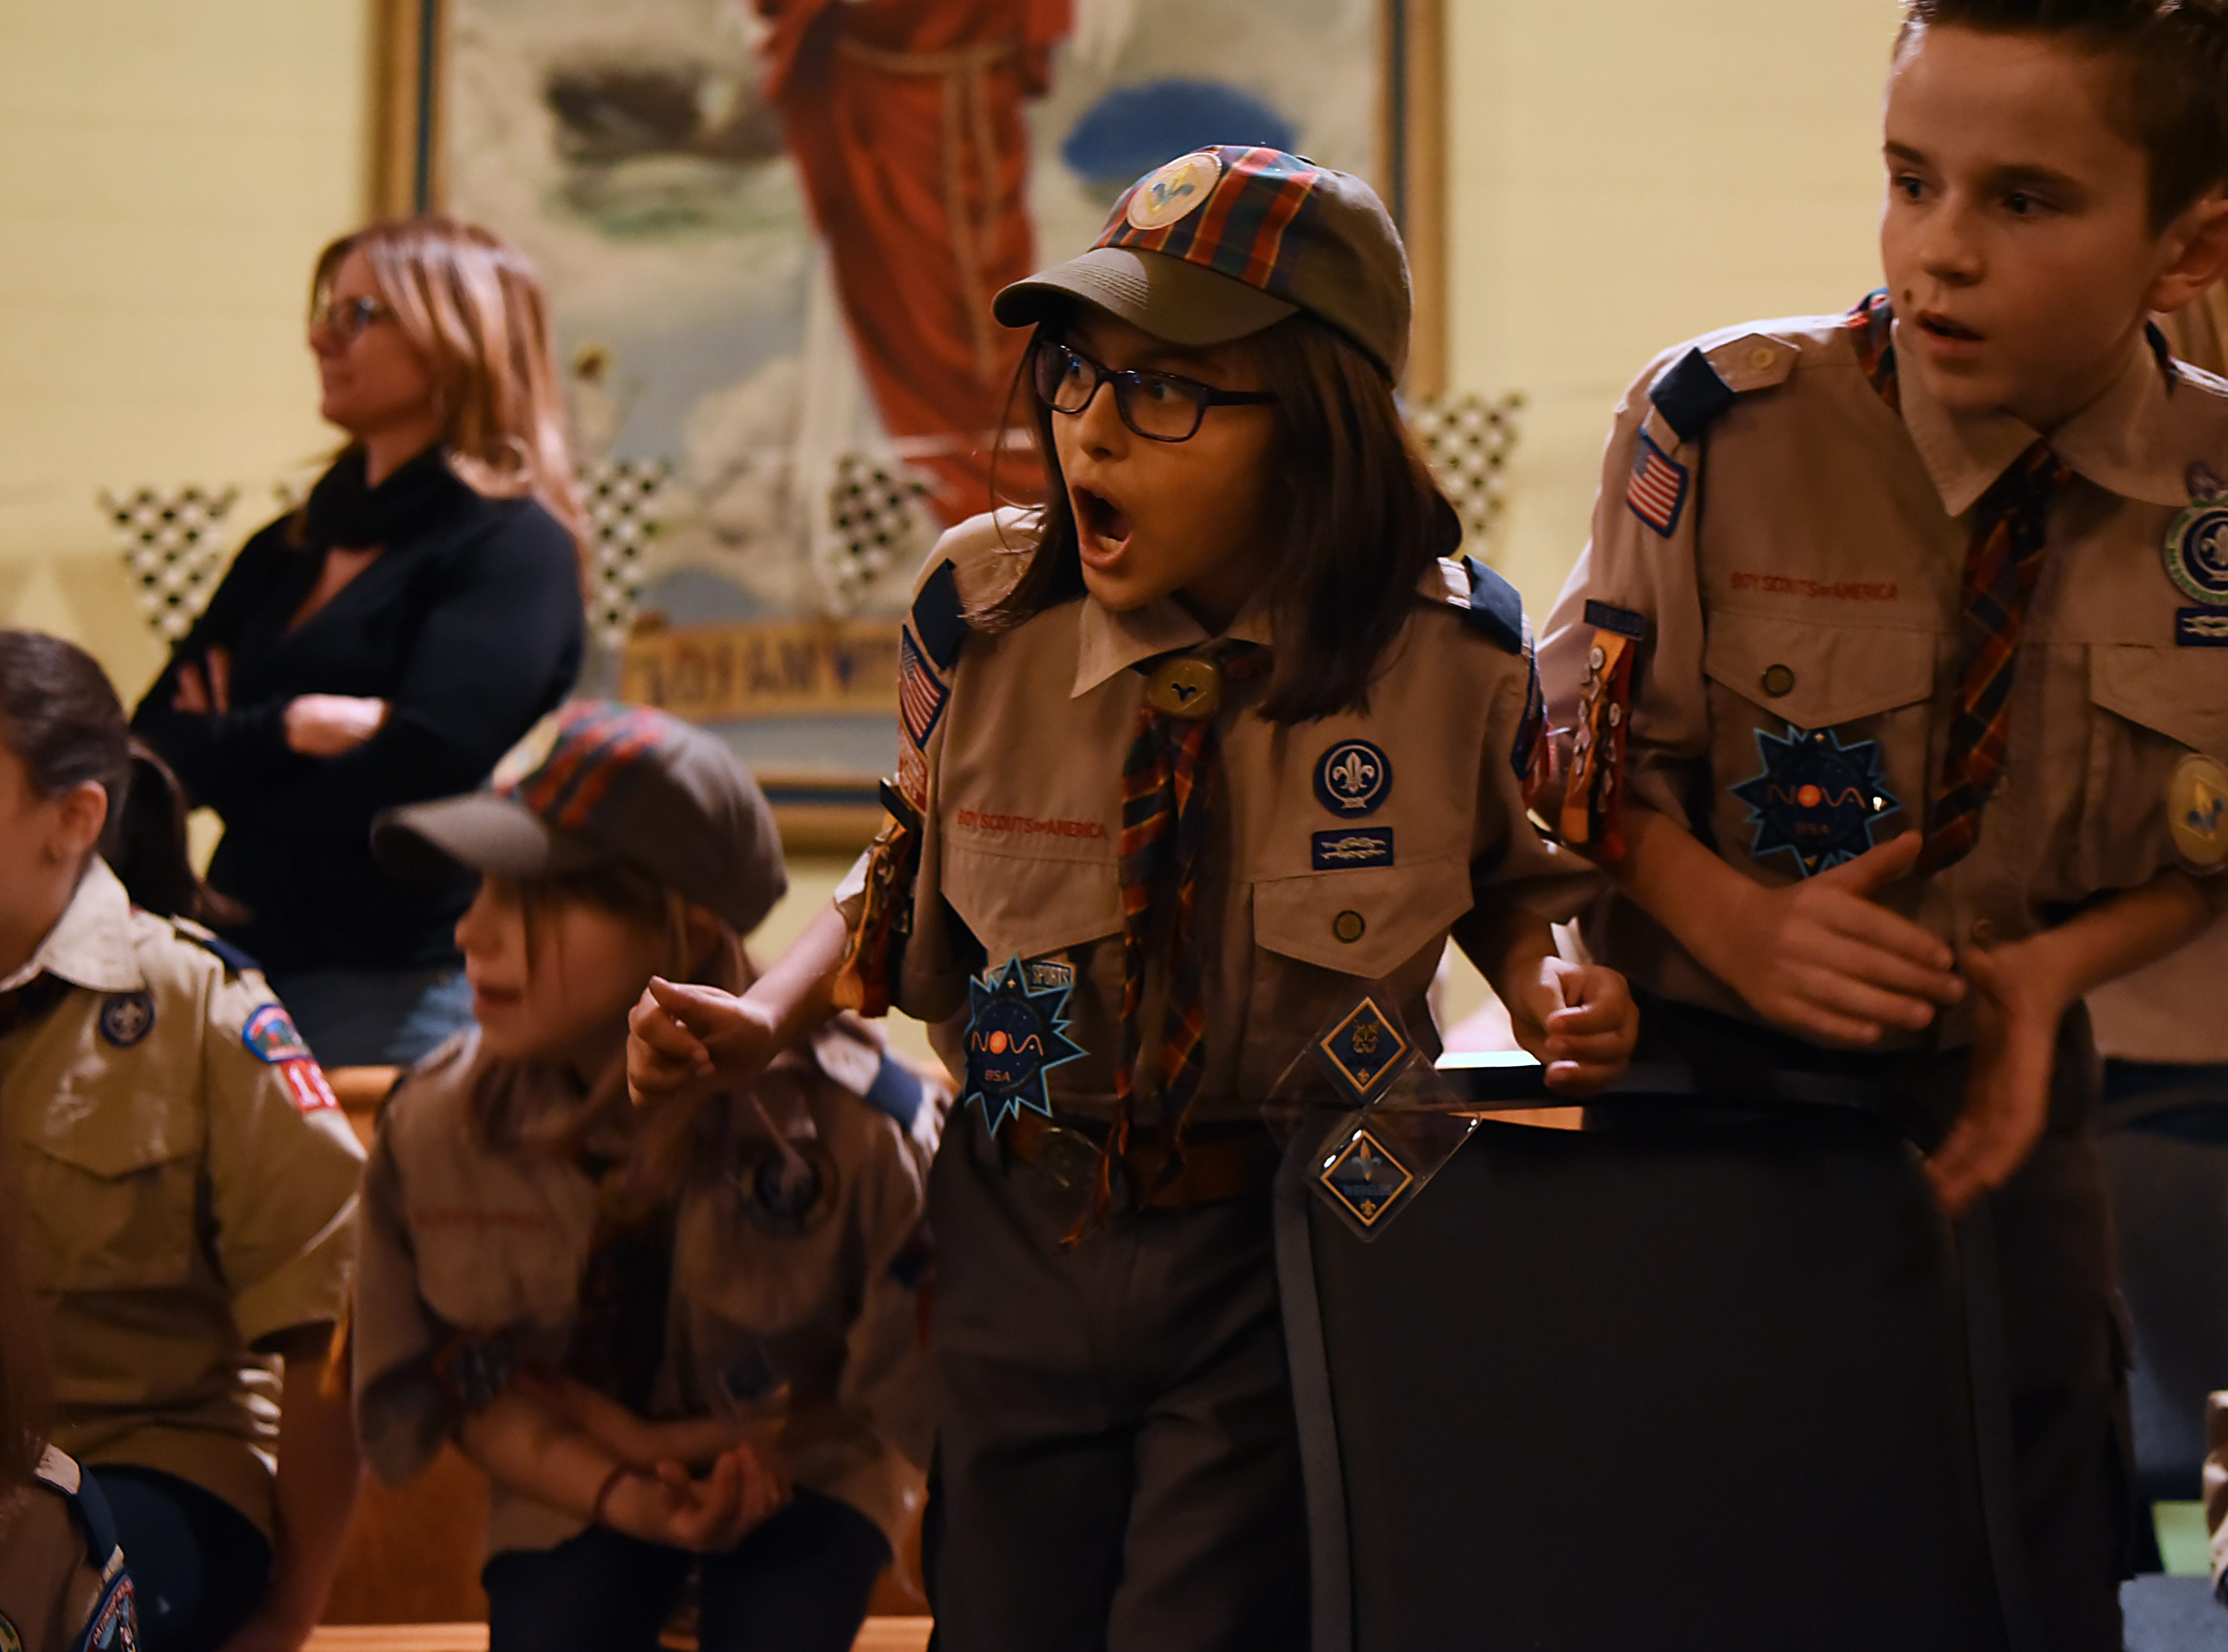 The Morris County Pinewood Derby at Holy Trinity Lutheran Church in Rockaway on Friday January 18, 2019. Anika Zoeller, 10 with Cub Scout pack 165 Arrow of Light den, reacts as the cars race to the finish line.